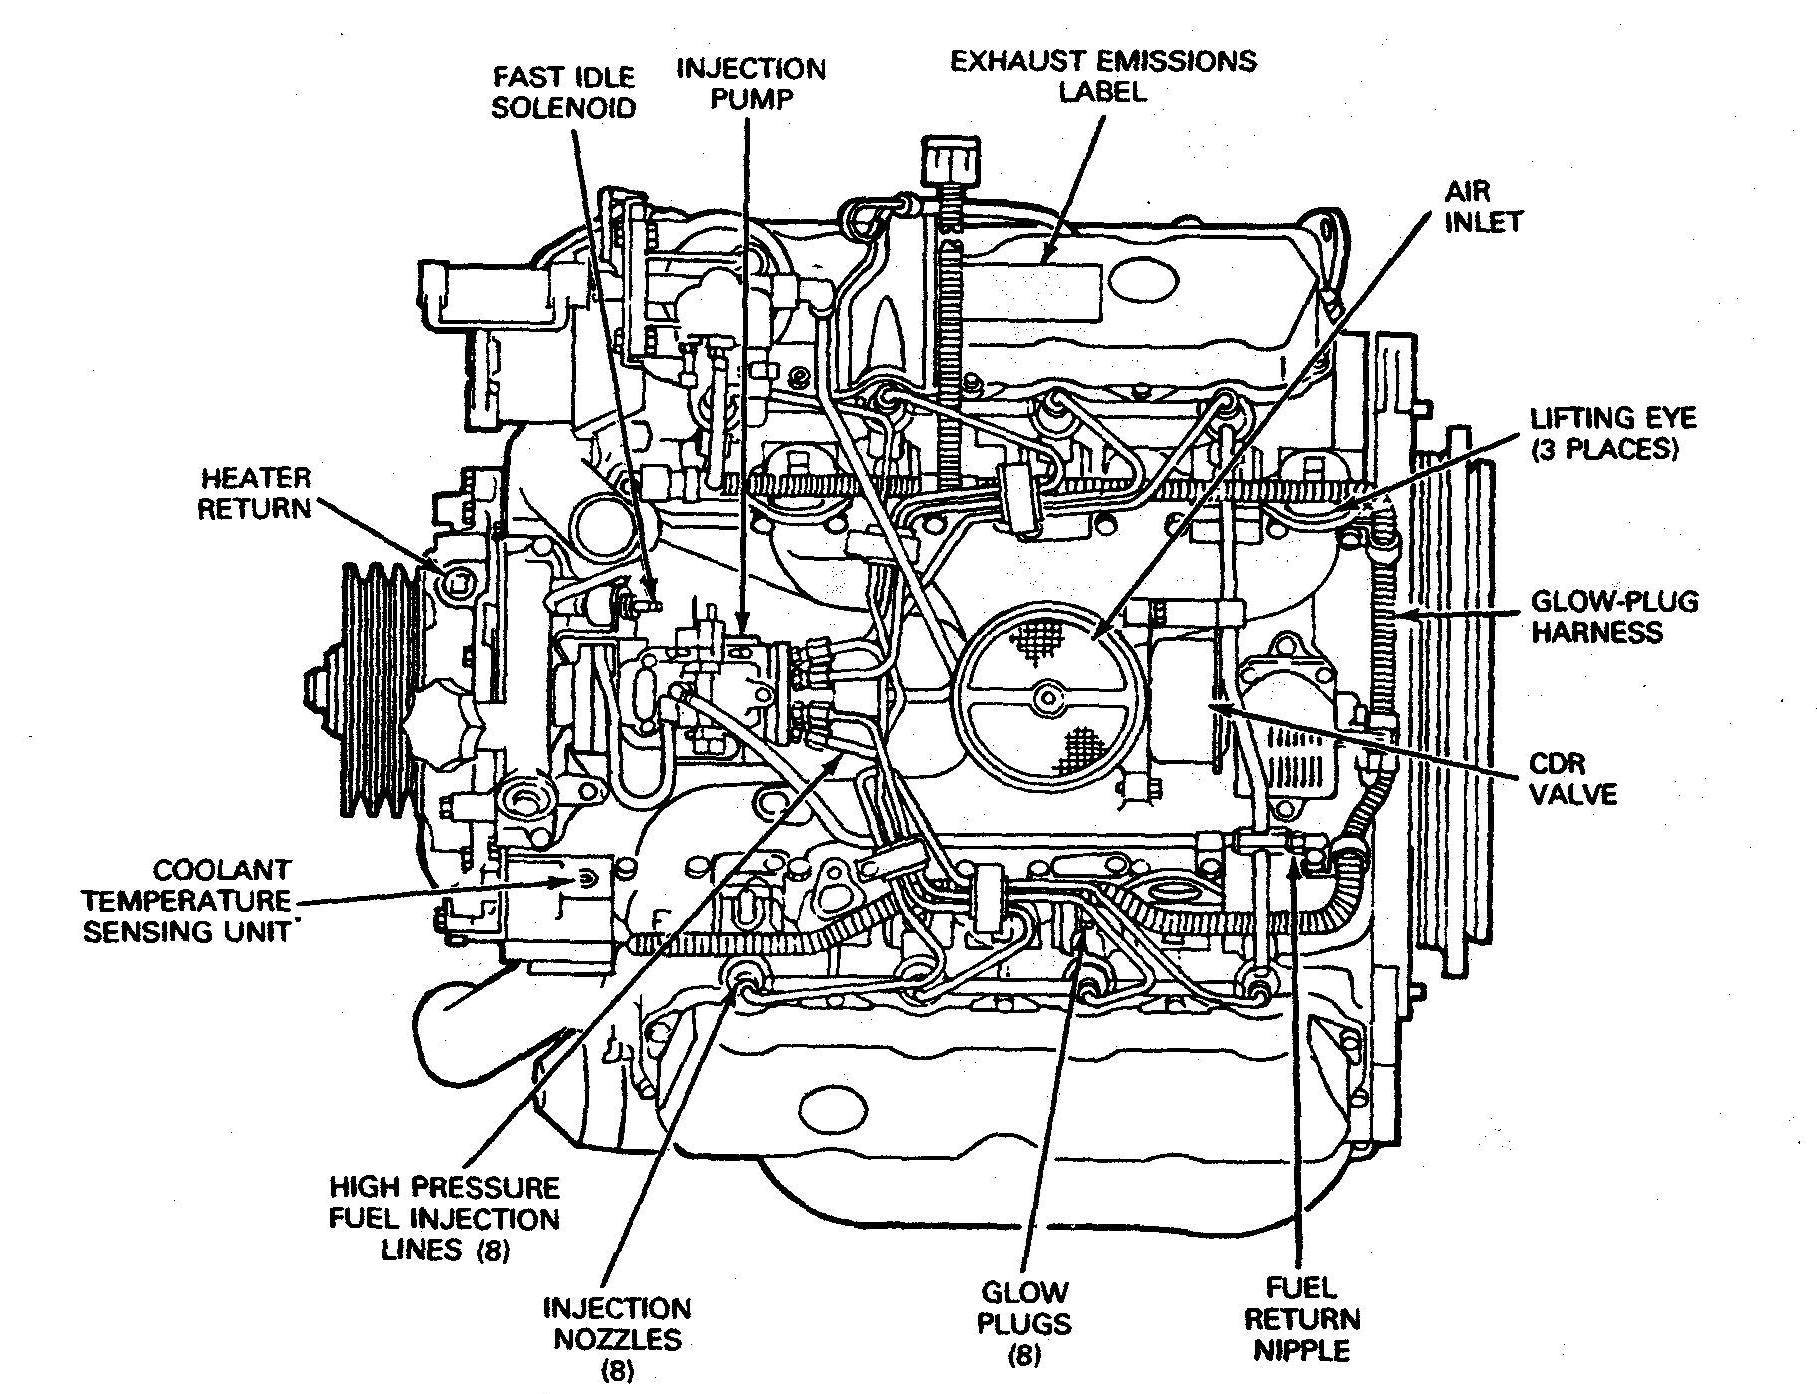 engine compartment diagram volvo s60 engine compartment diagram